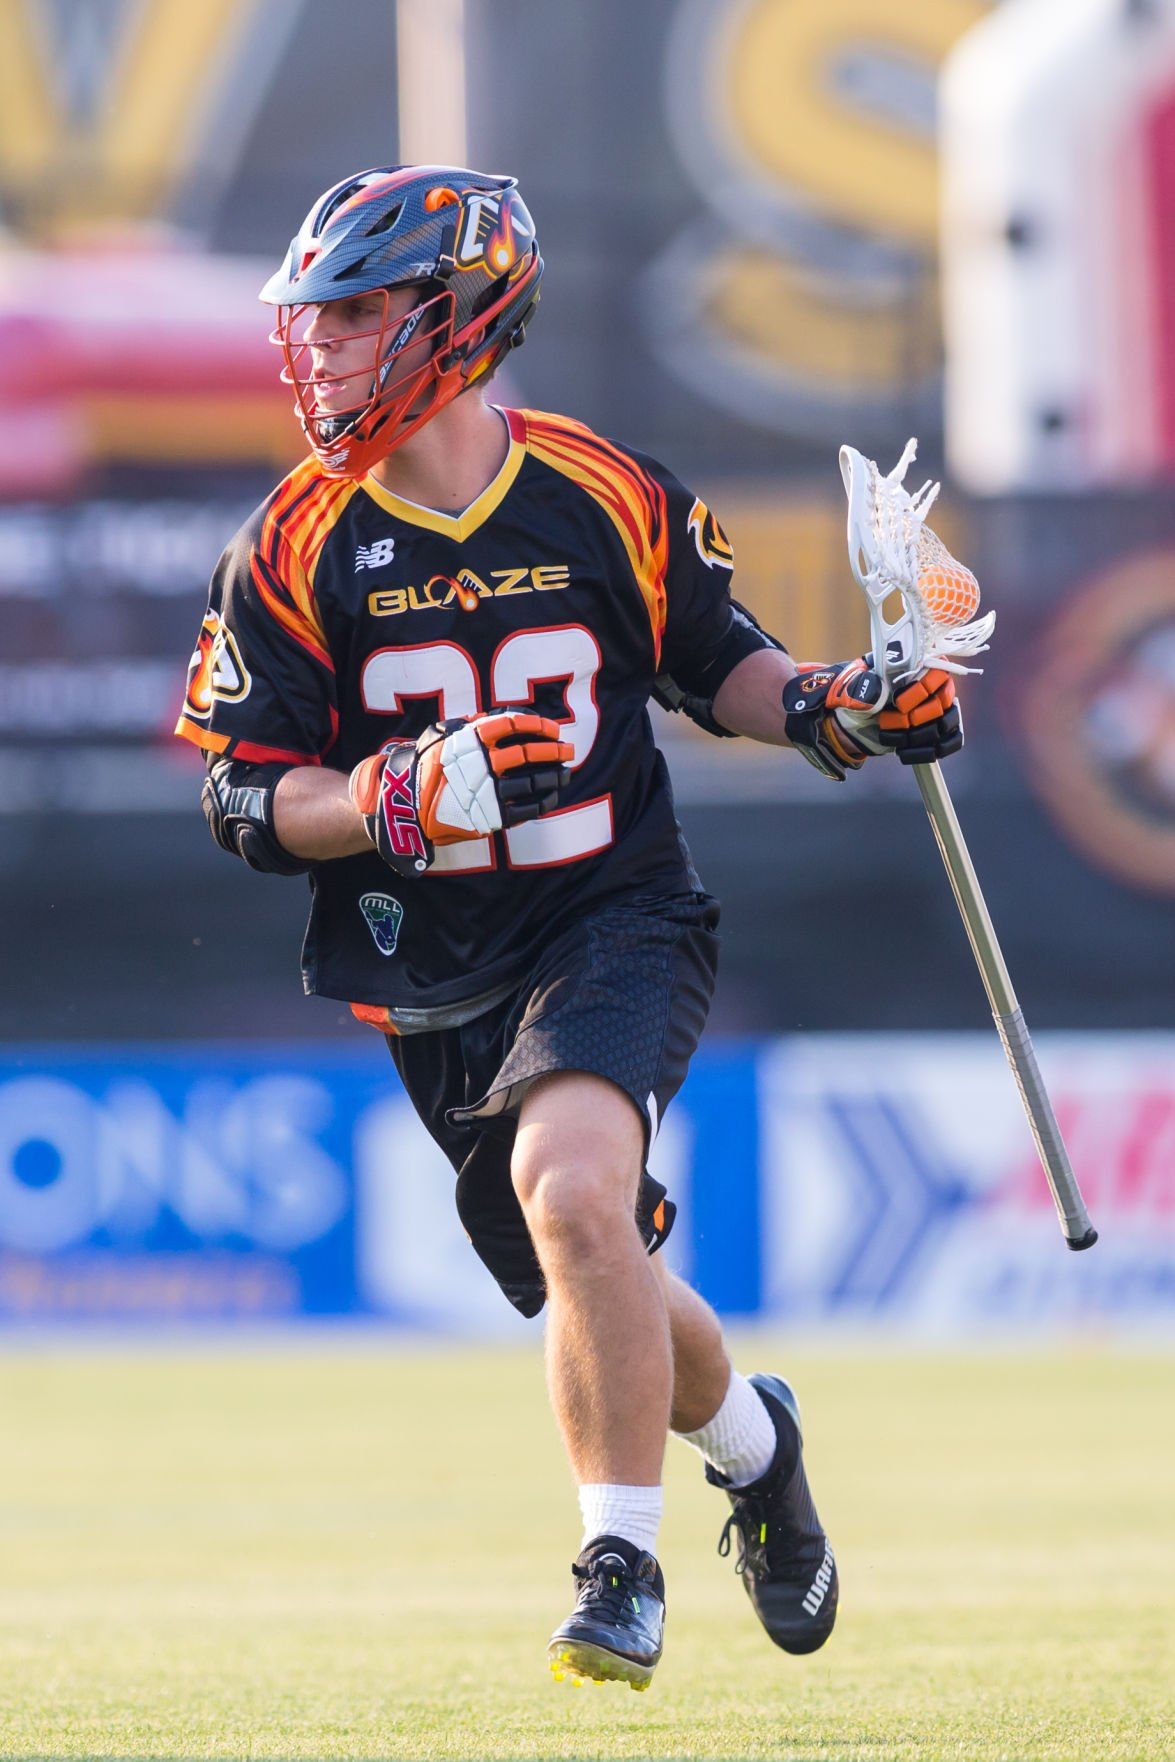 Skaneateles' Kevin Rice named to All-MLL team | Local ...